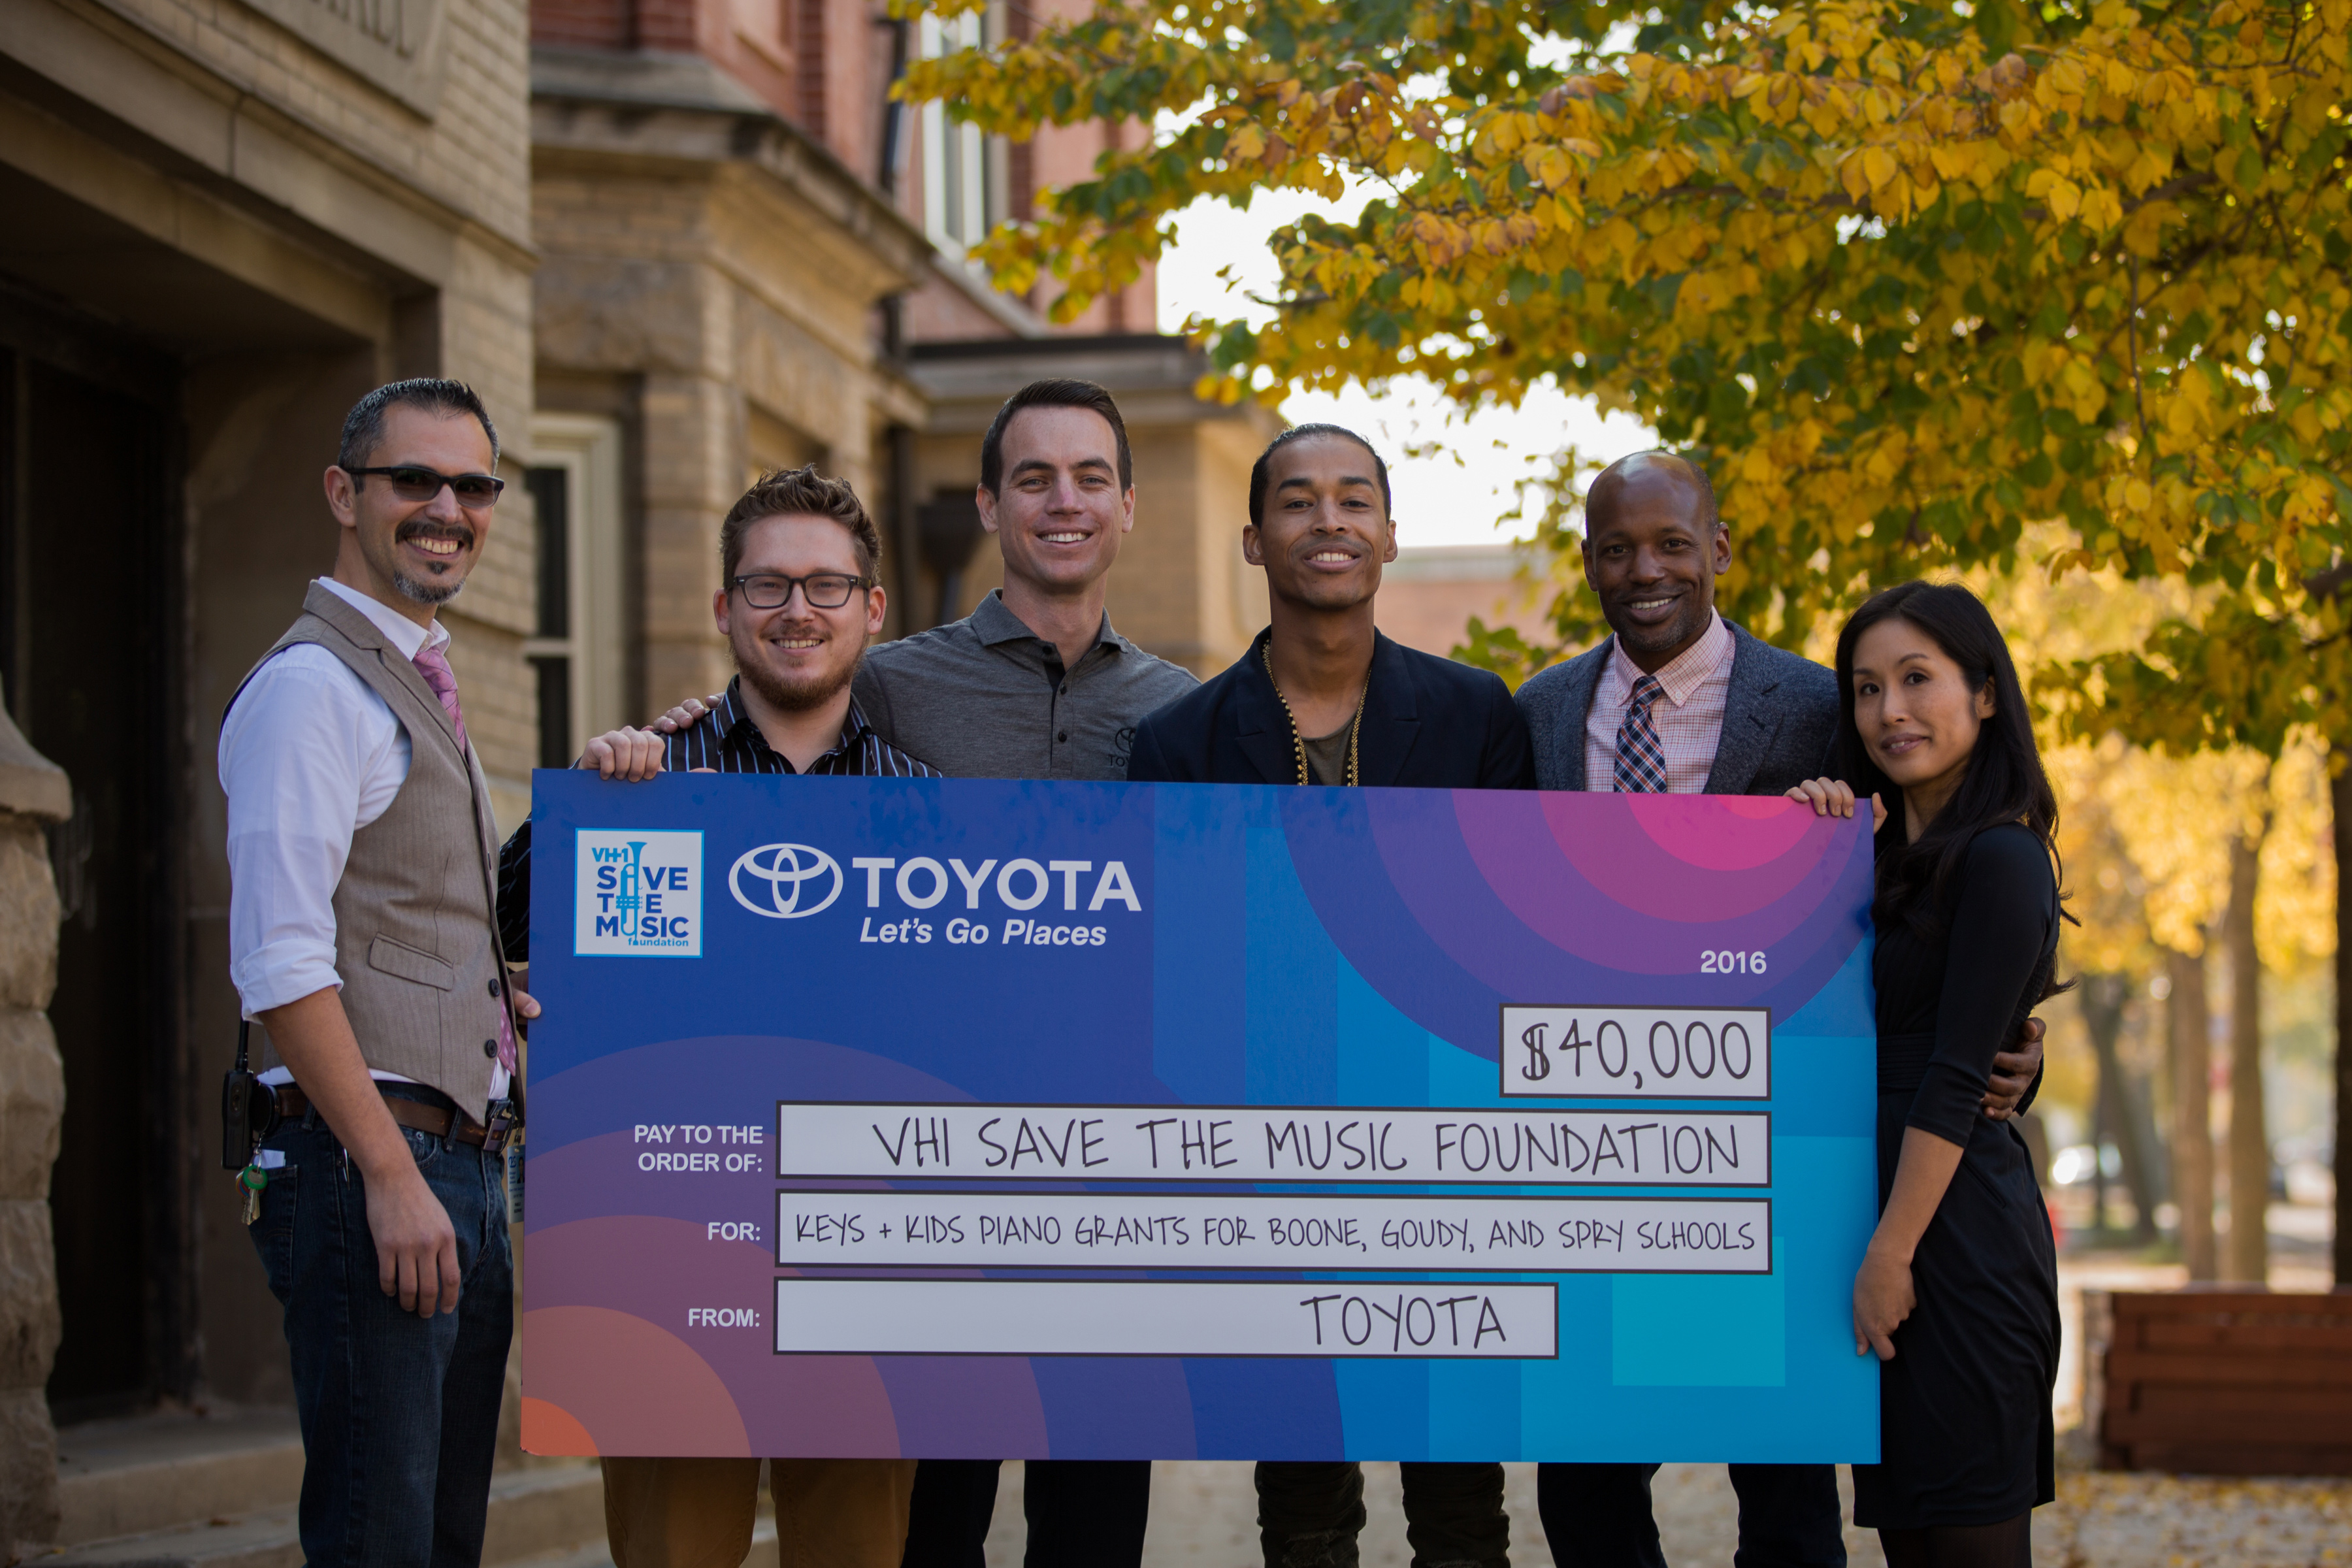 Toyota and VH1 Save The Music National Music Education